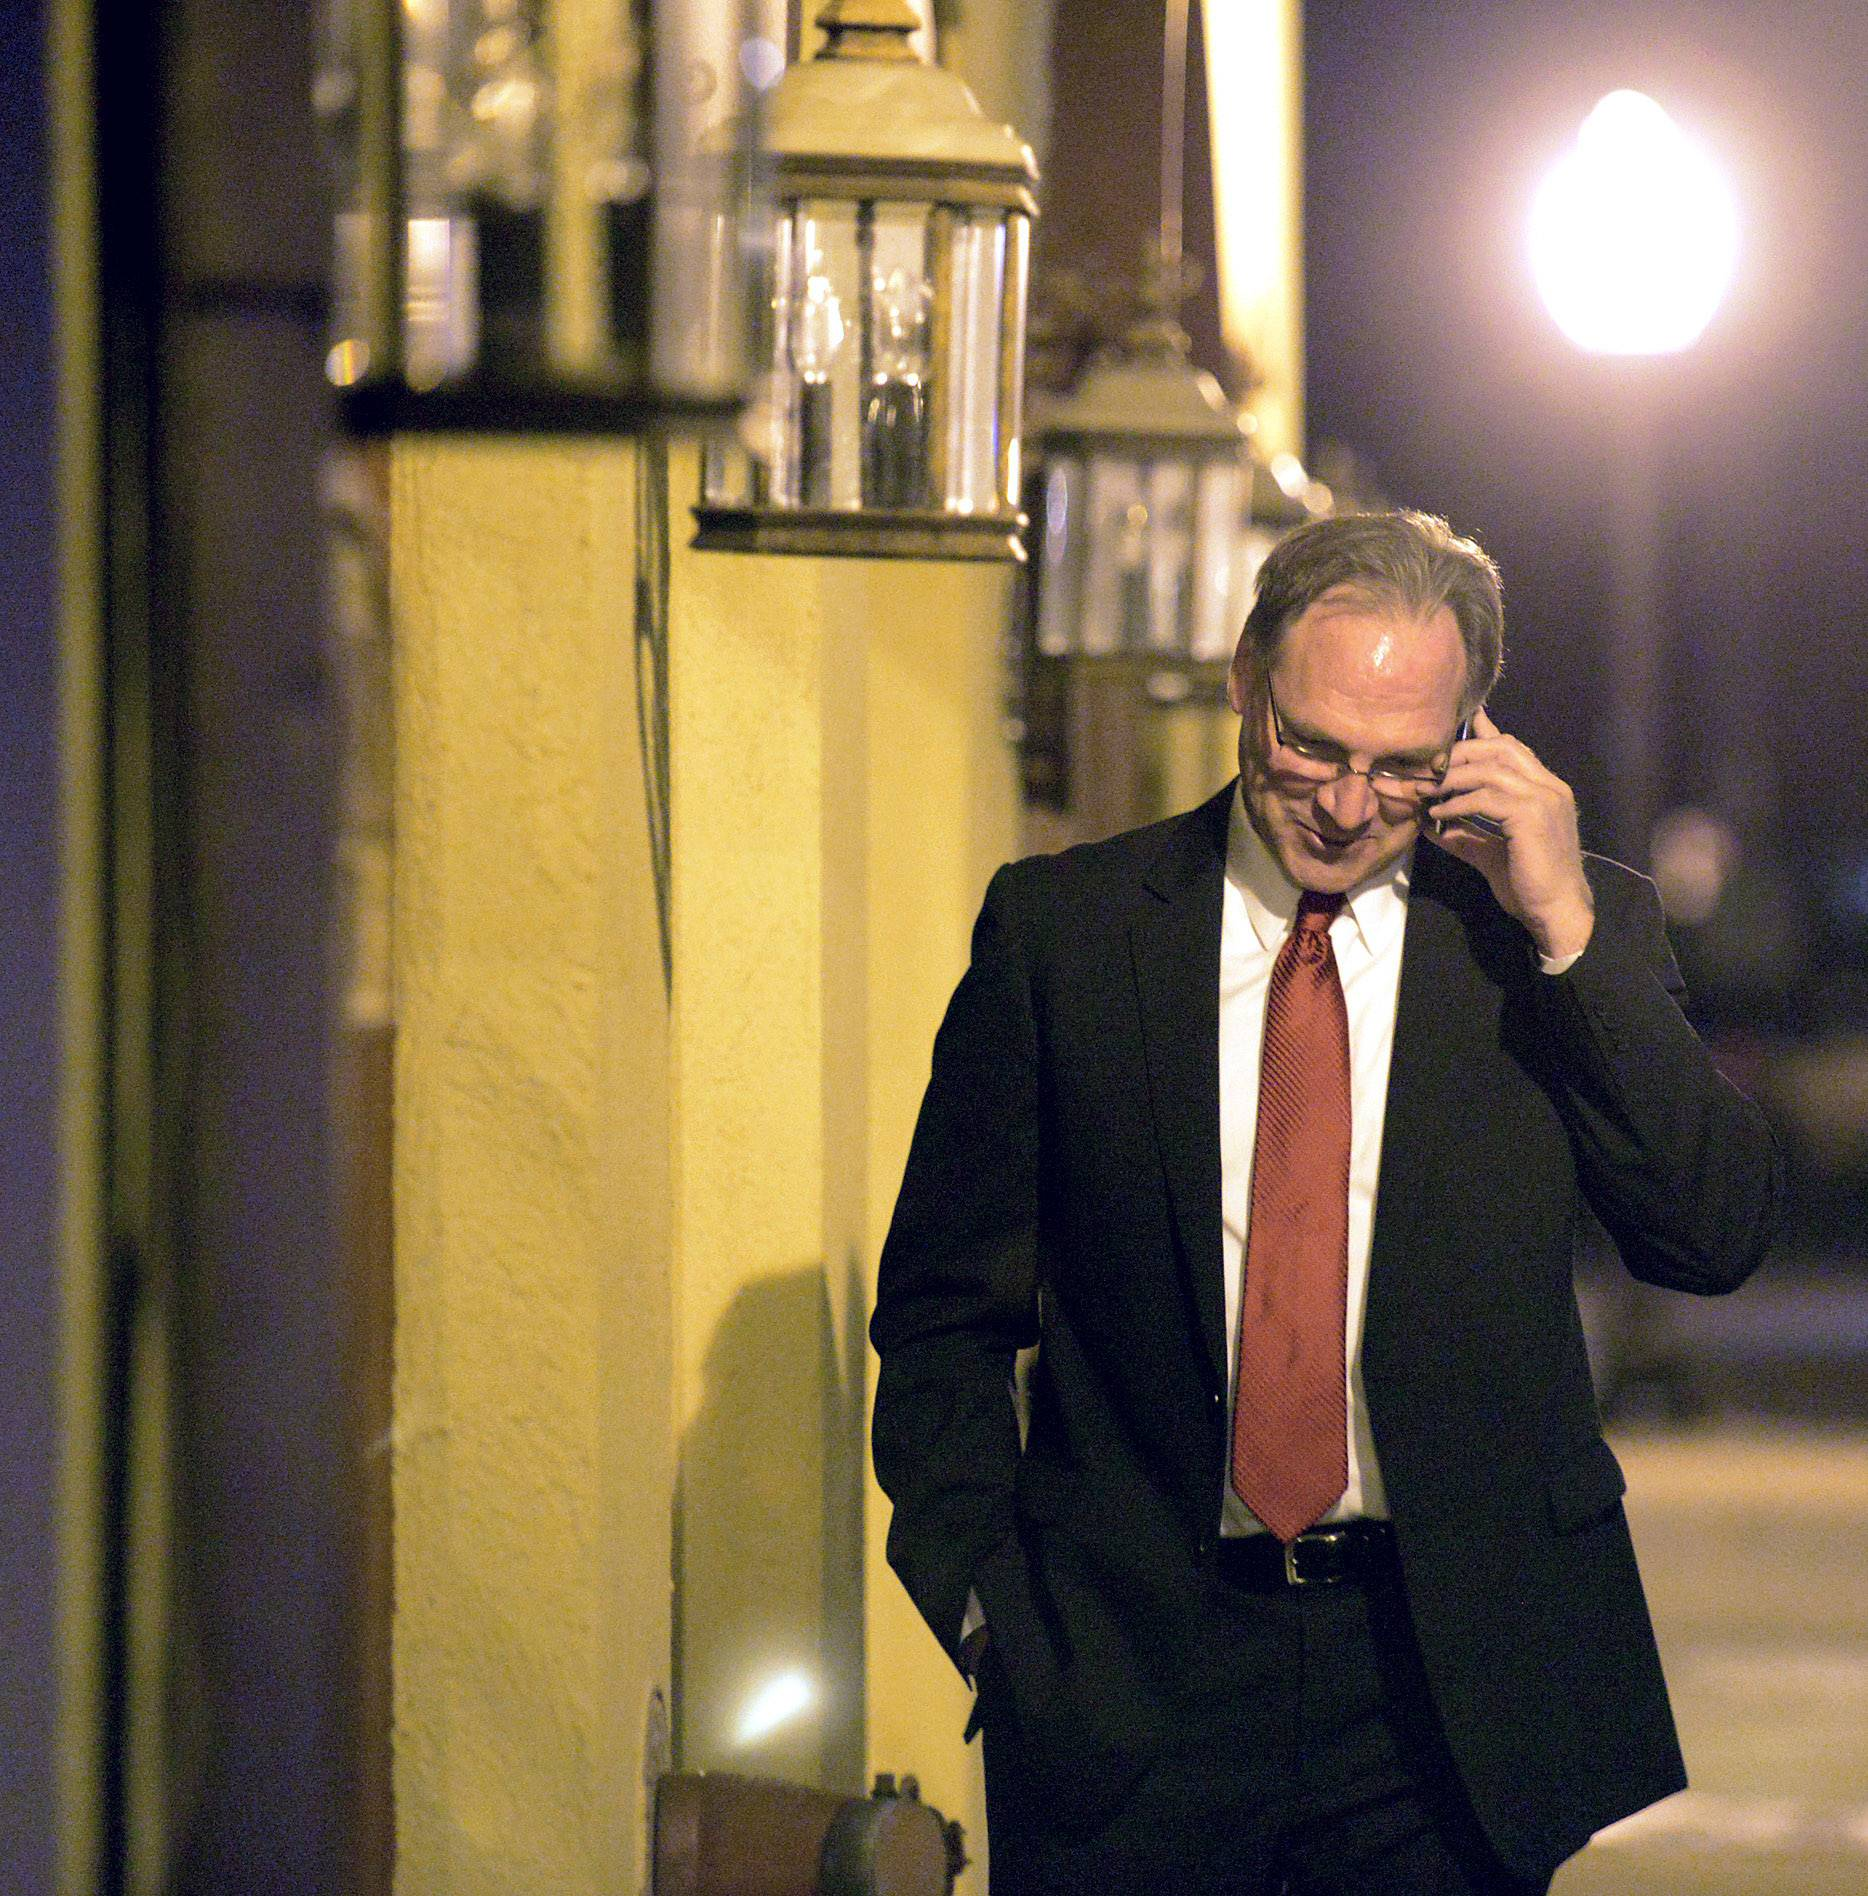 Kane County Sheriff Republican candidate Don Kramer returns phone calls outside his election night gathering in Geneva after claiming victory in the nomination for Sheriff .